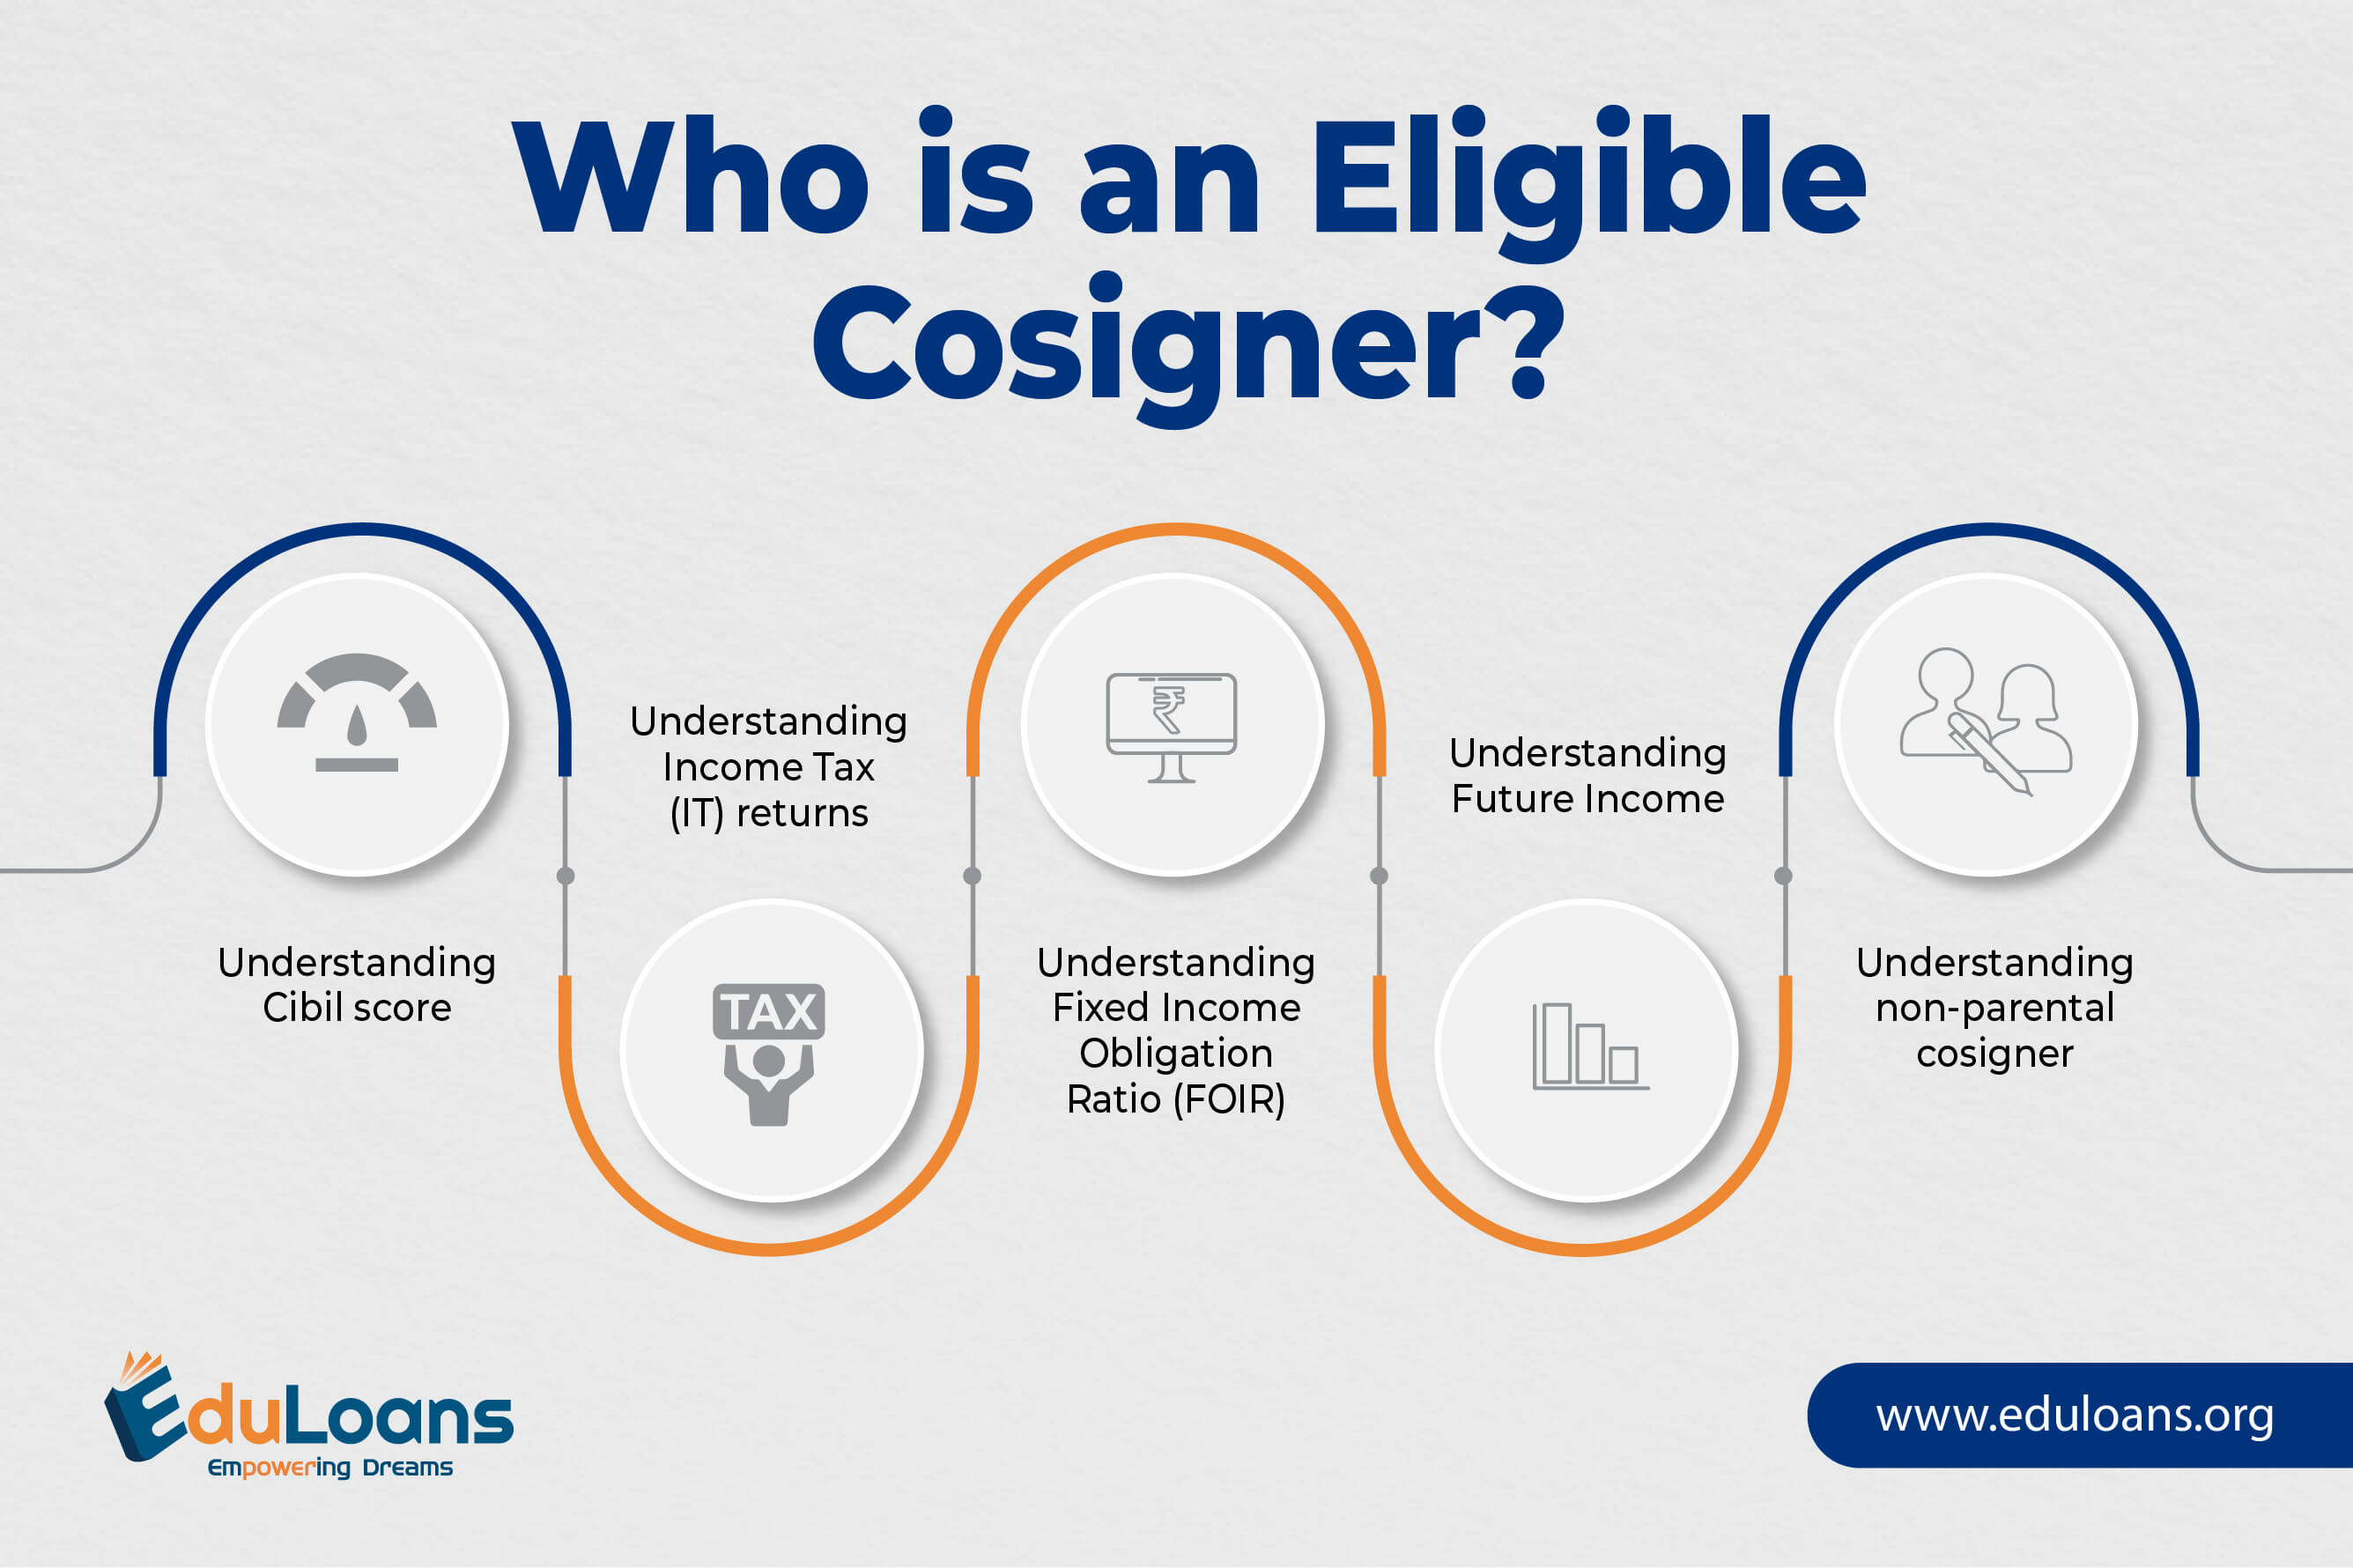 Who is an eligible Cosigner?